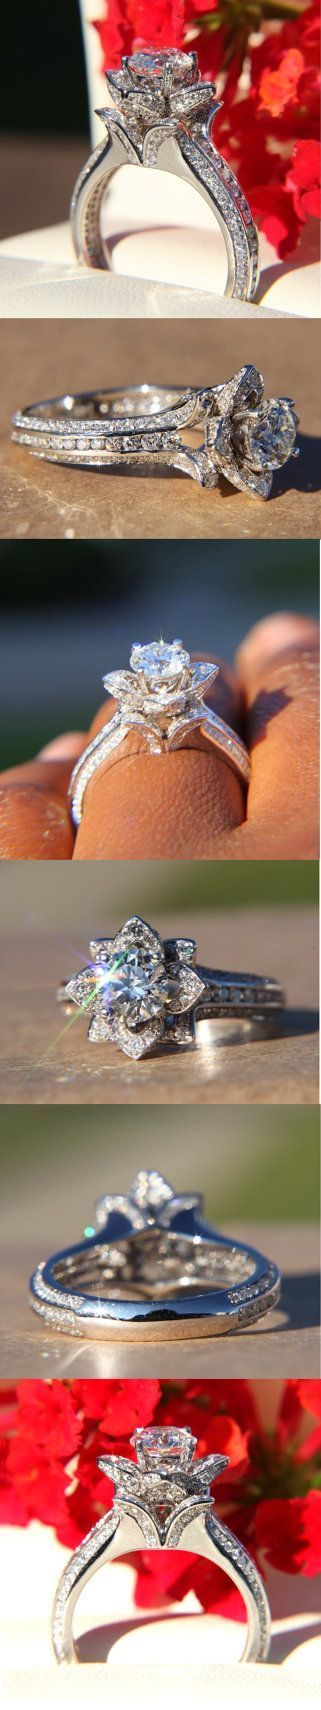 Rose Diamond Ring! LOVE.....this ring is